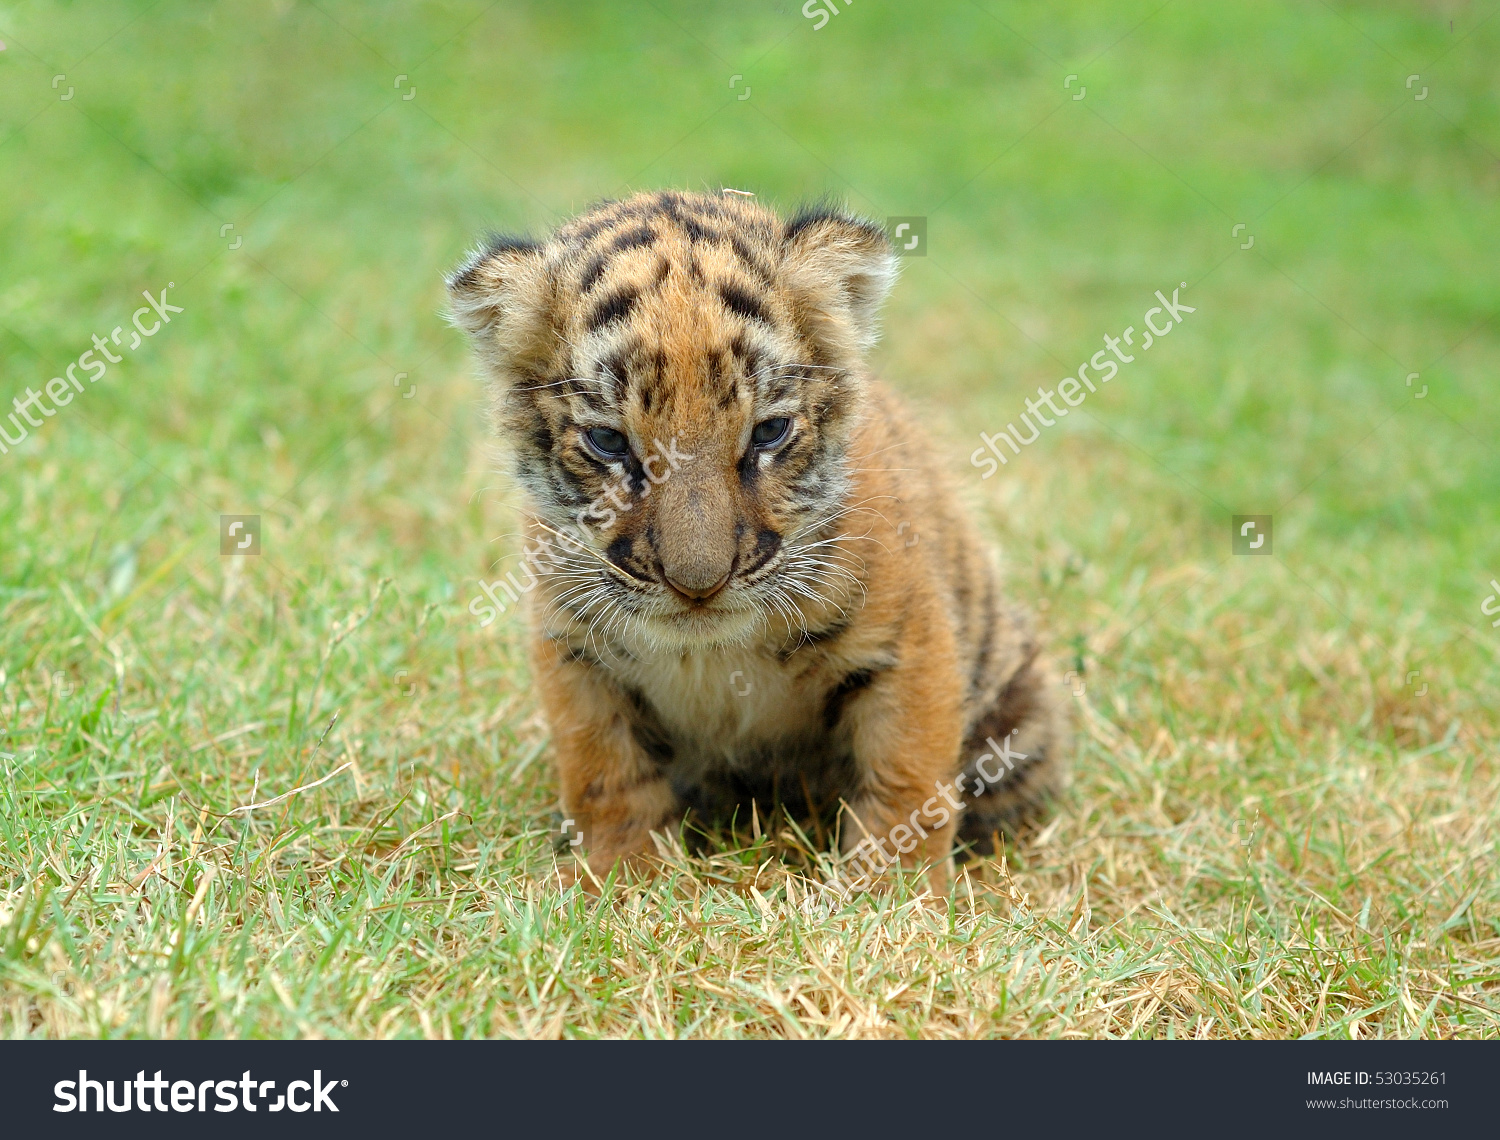 Baby Tiger Stock Photo 53035261 - Shutterstock